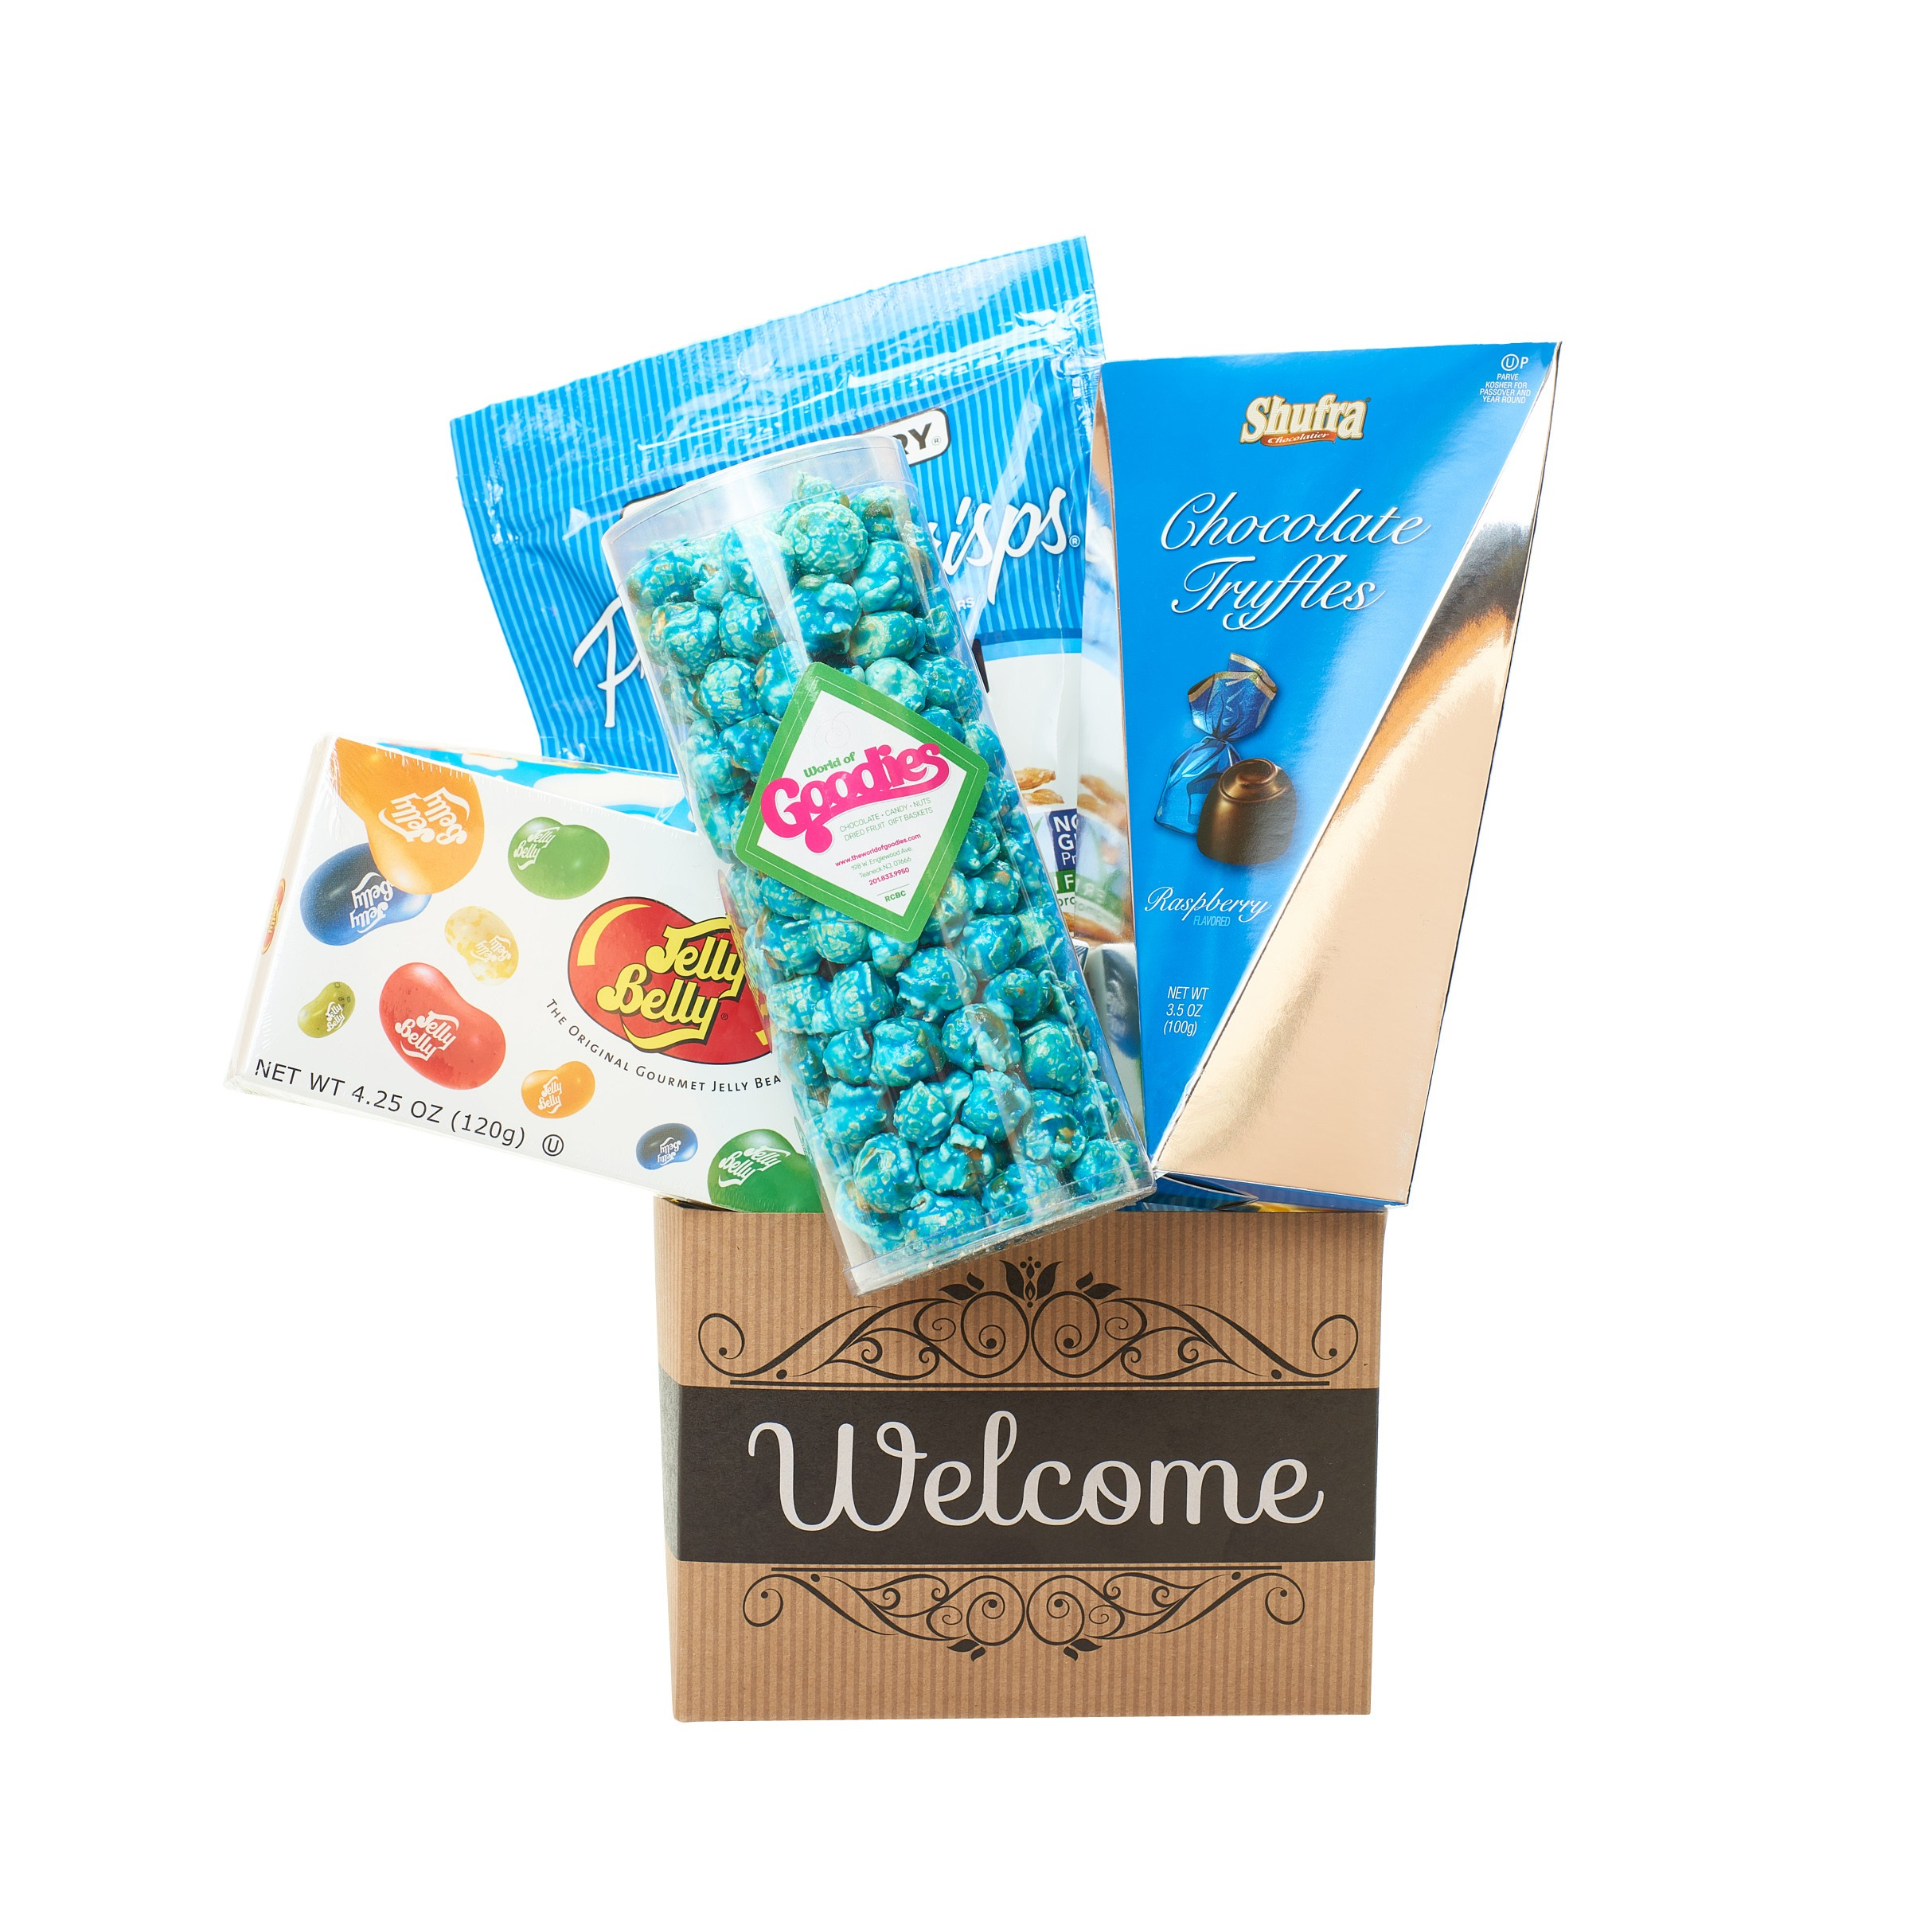 Welcome! Gift Box